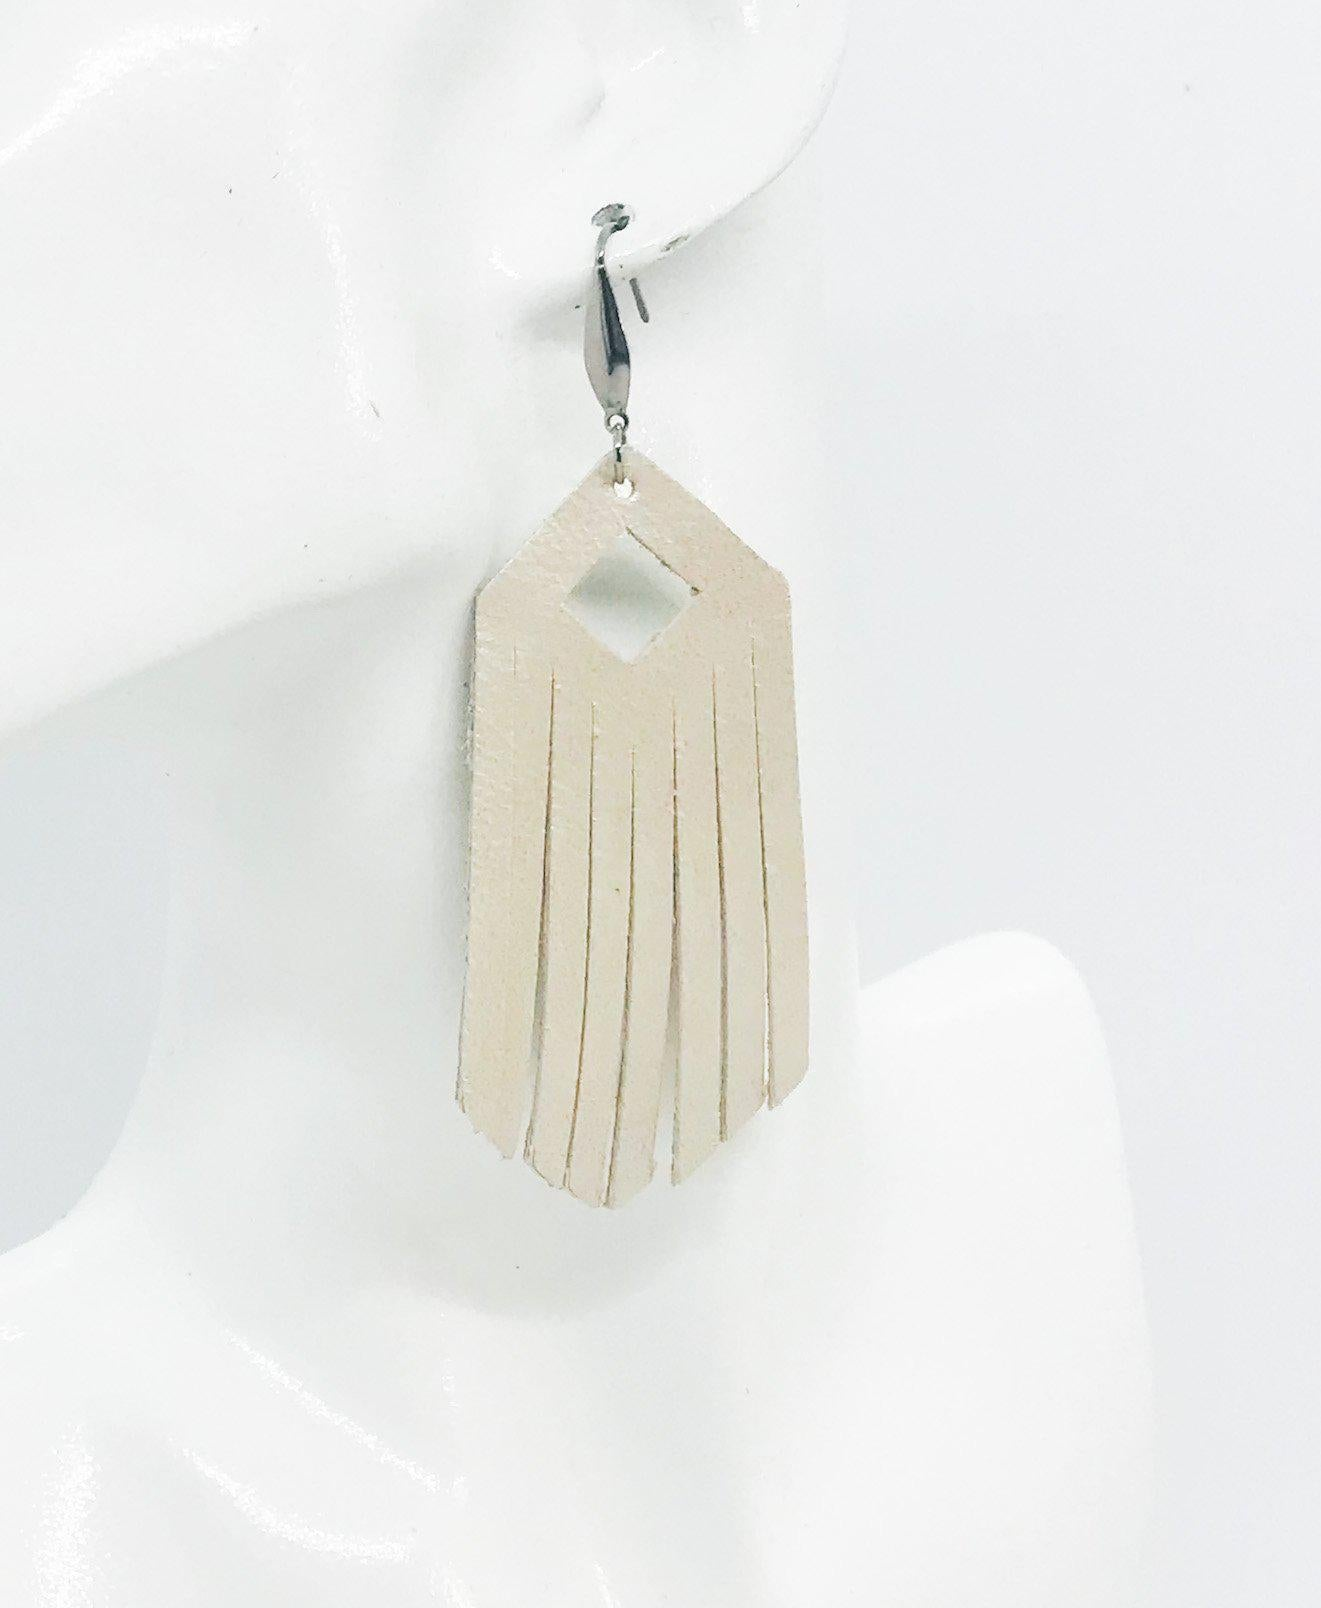 Champagne Leather Earrings - E19-1152